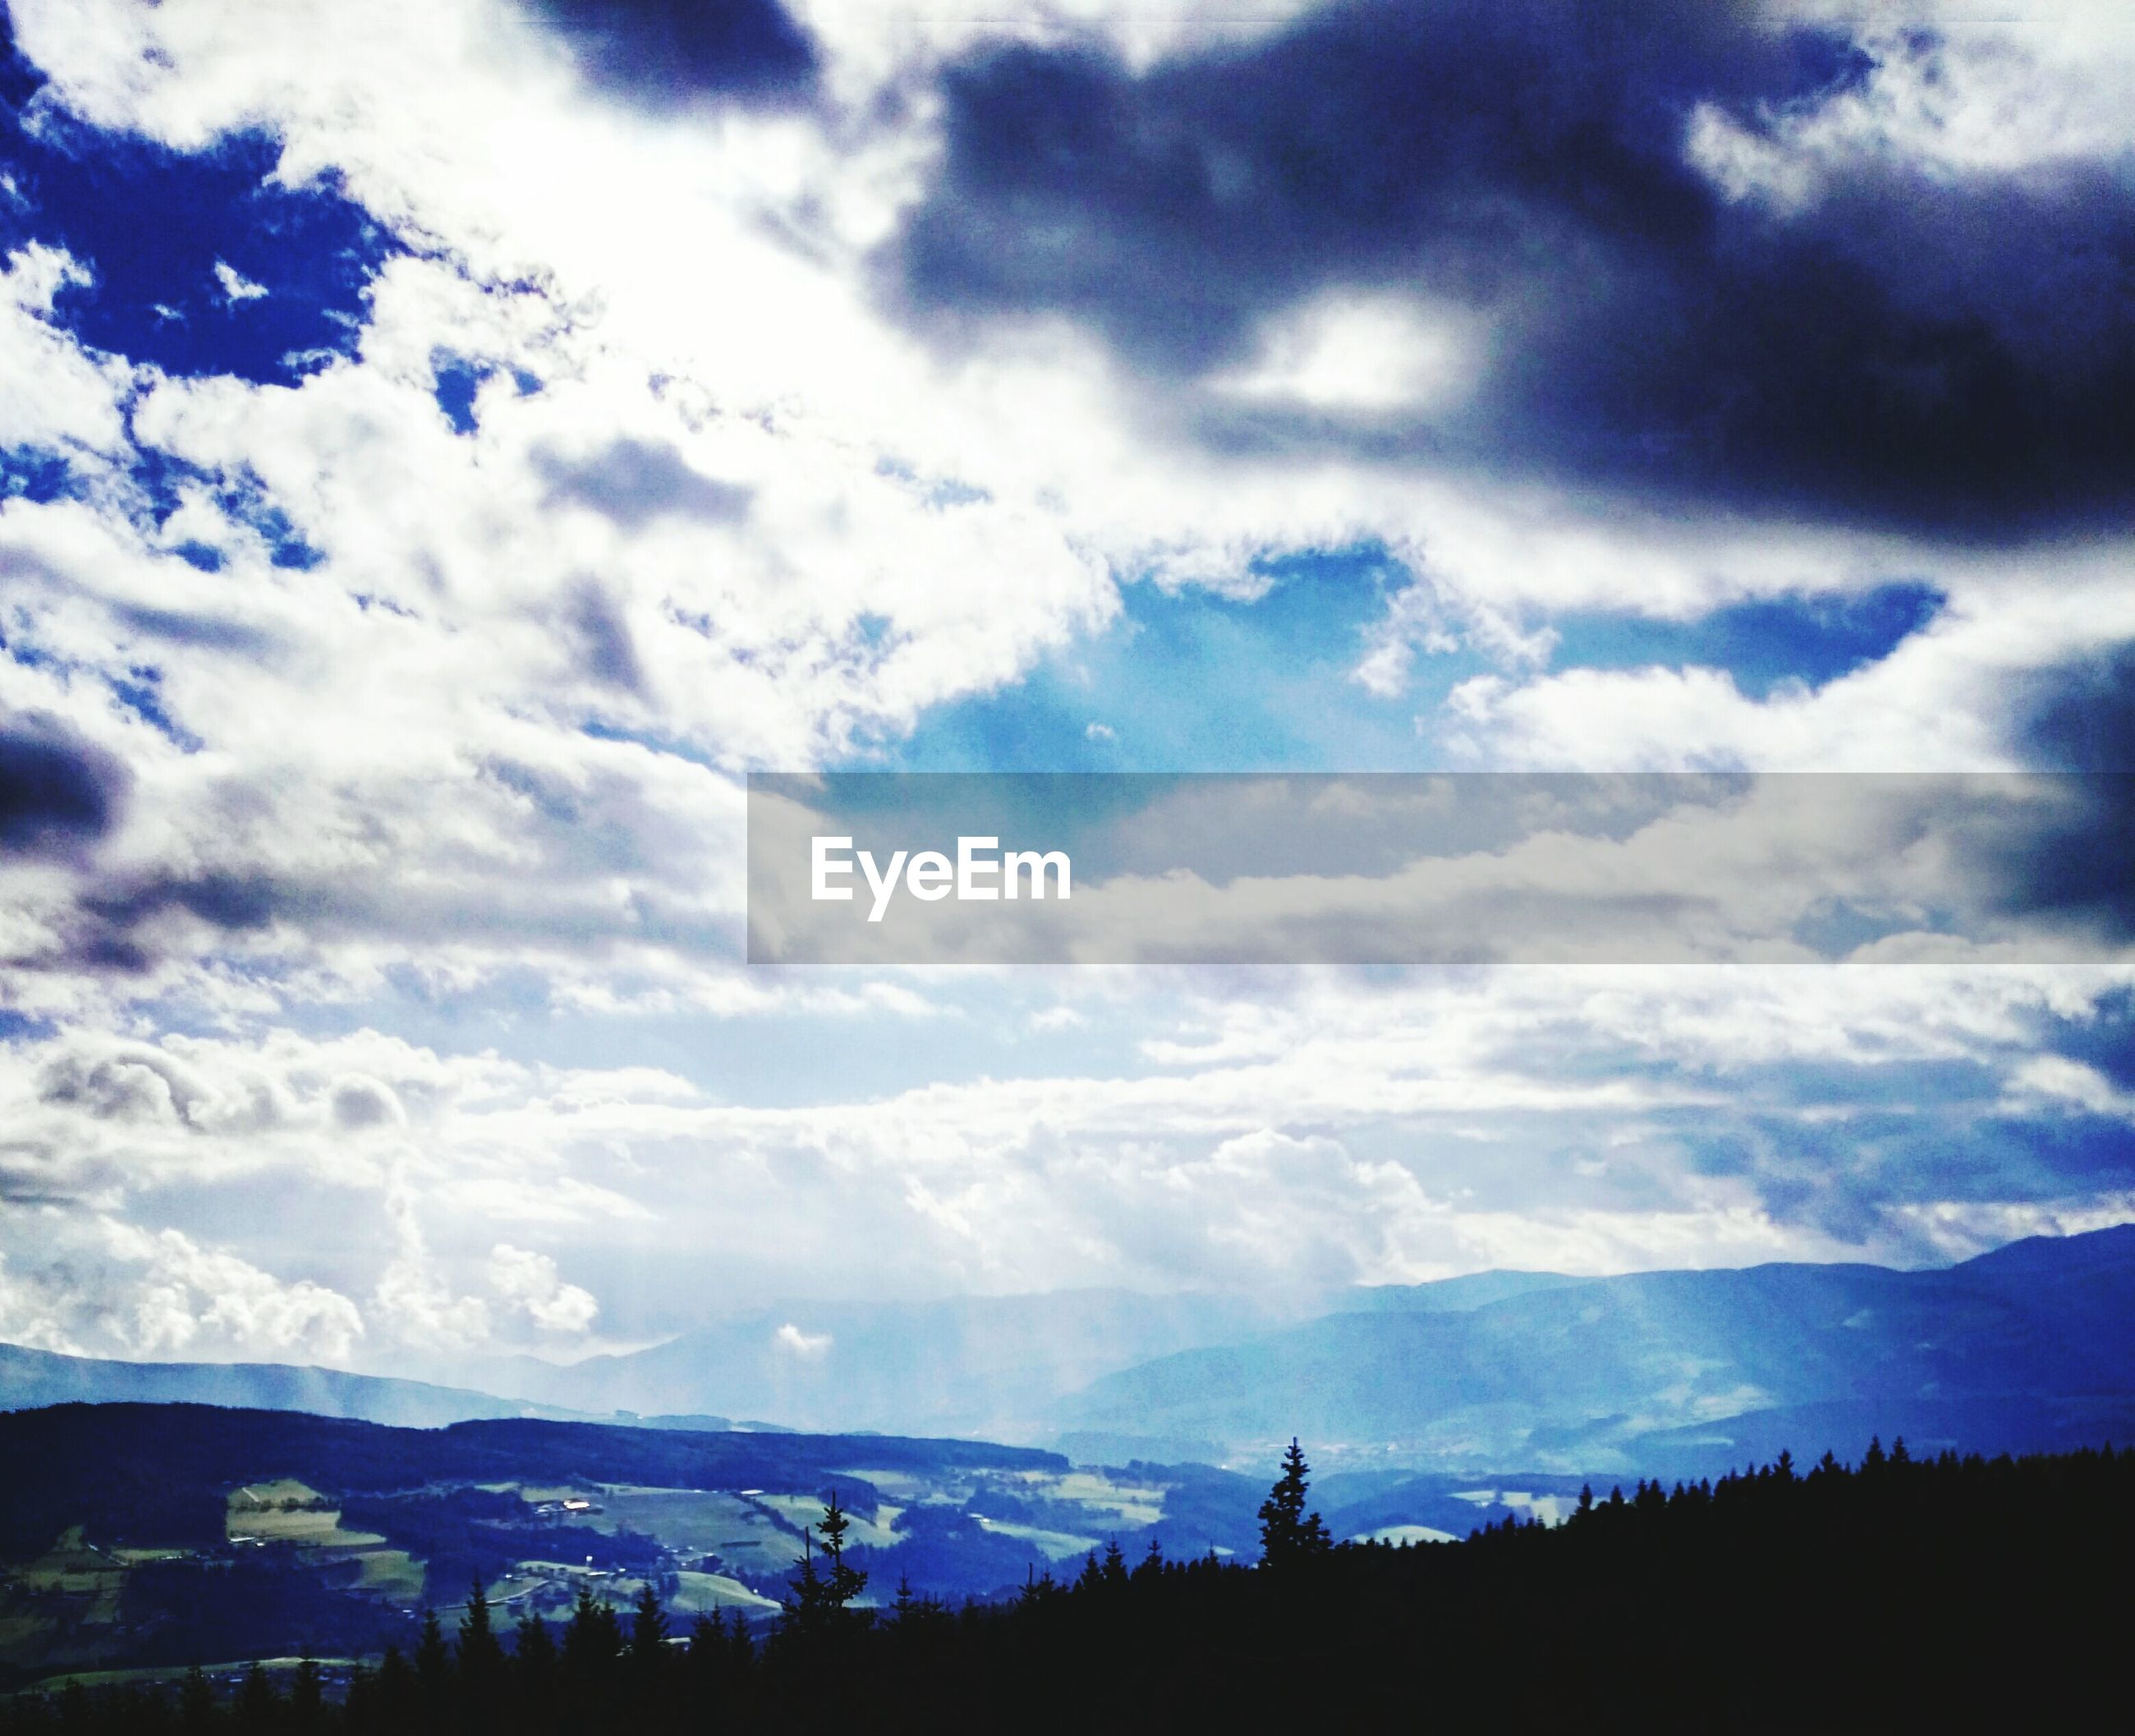 sky, cloud - sky, nature, beauty in nature, tranquility, scenics, tranquil scene, tree, outdoors, growth, no people, sunbeam, day, landscape, mountain